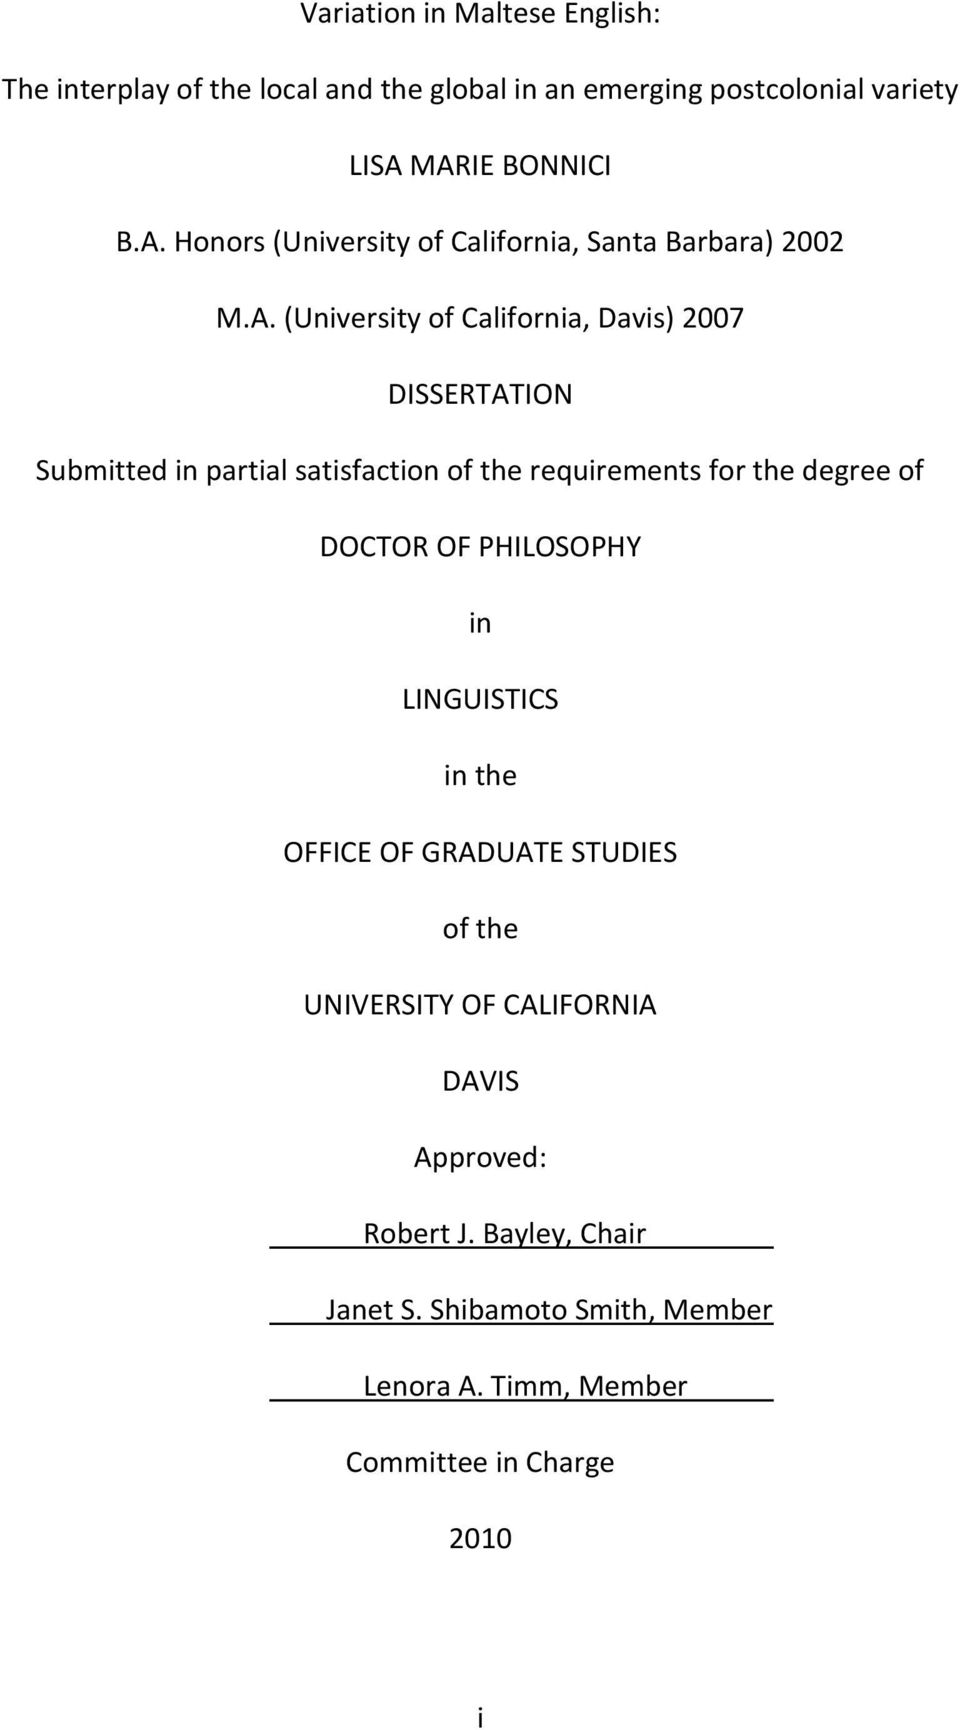 Submitted in partial satisfaction of the requirements for the degree of DOCTOR OF PHILOSOPHY in LINGUISTICS in the OFFICE OF GRADUATE